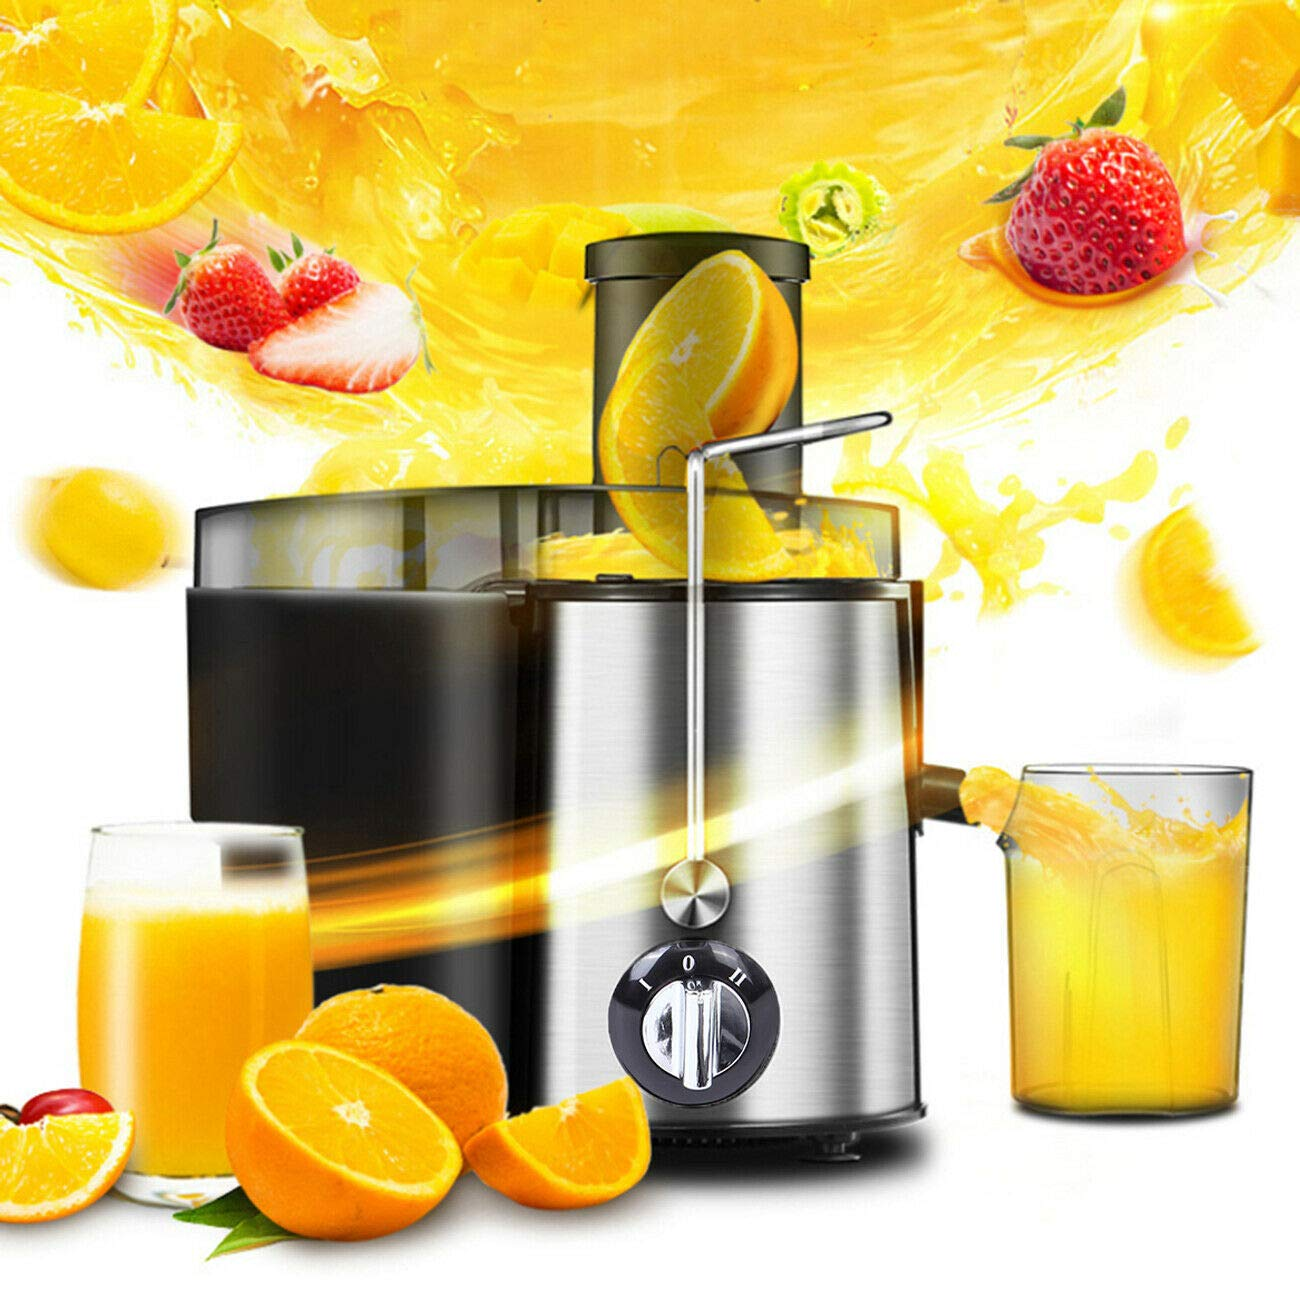 Ridgeyard Electric Juicer High Speed Juice Extractor for Fruit and Vegetables Dual Speed Setting Centrifugal Juicing Machine with Juice Jug, Premium Food Grade Stainless Steel 400W